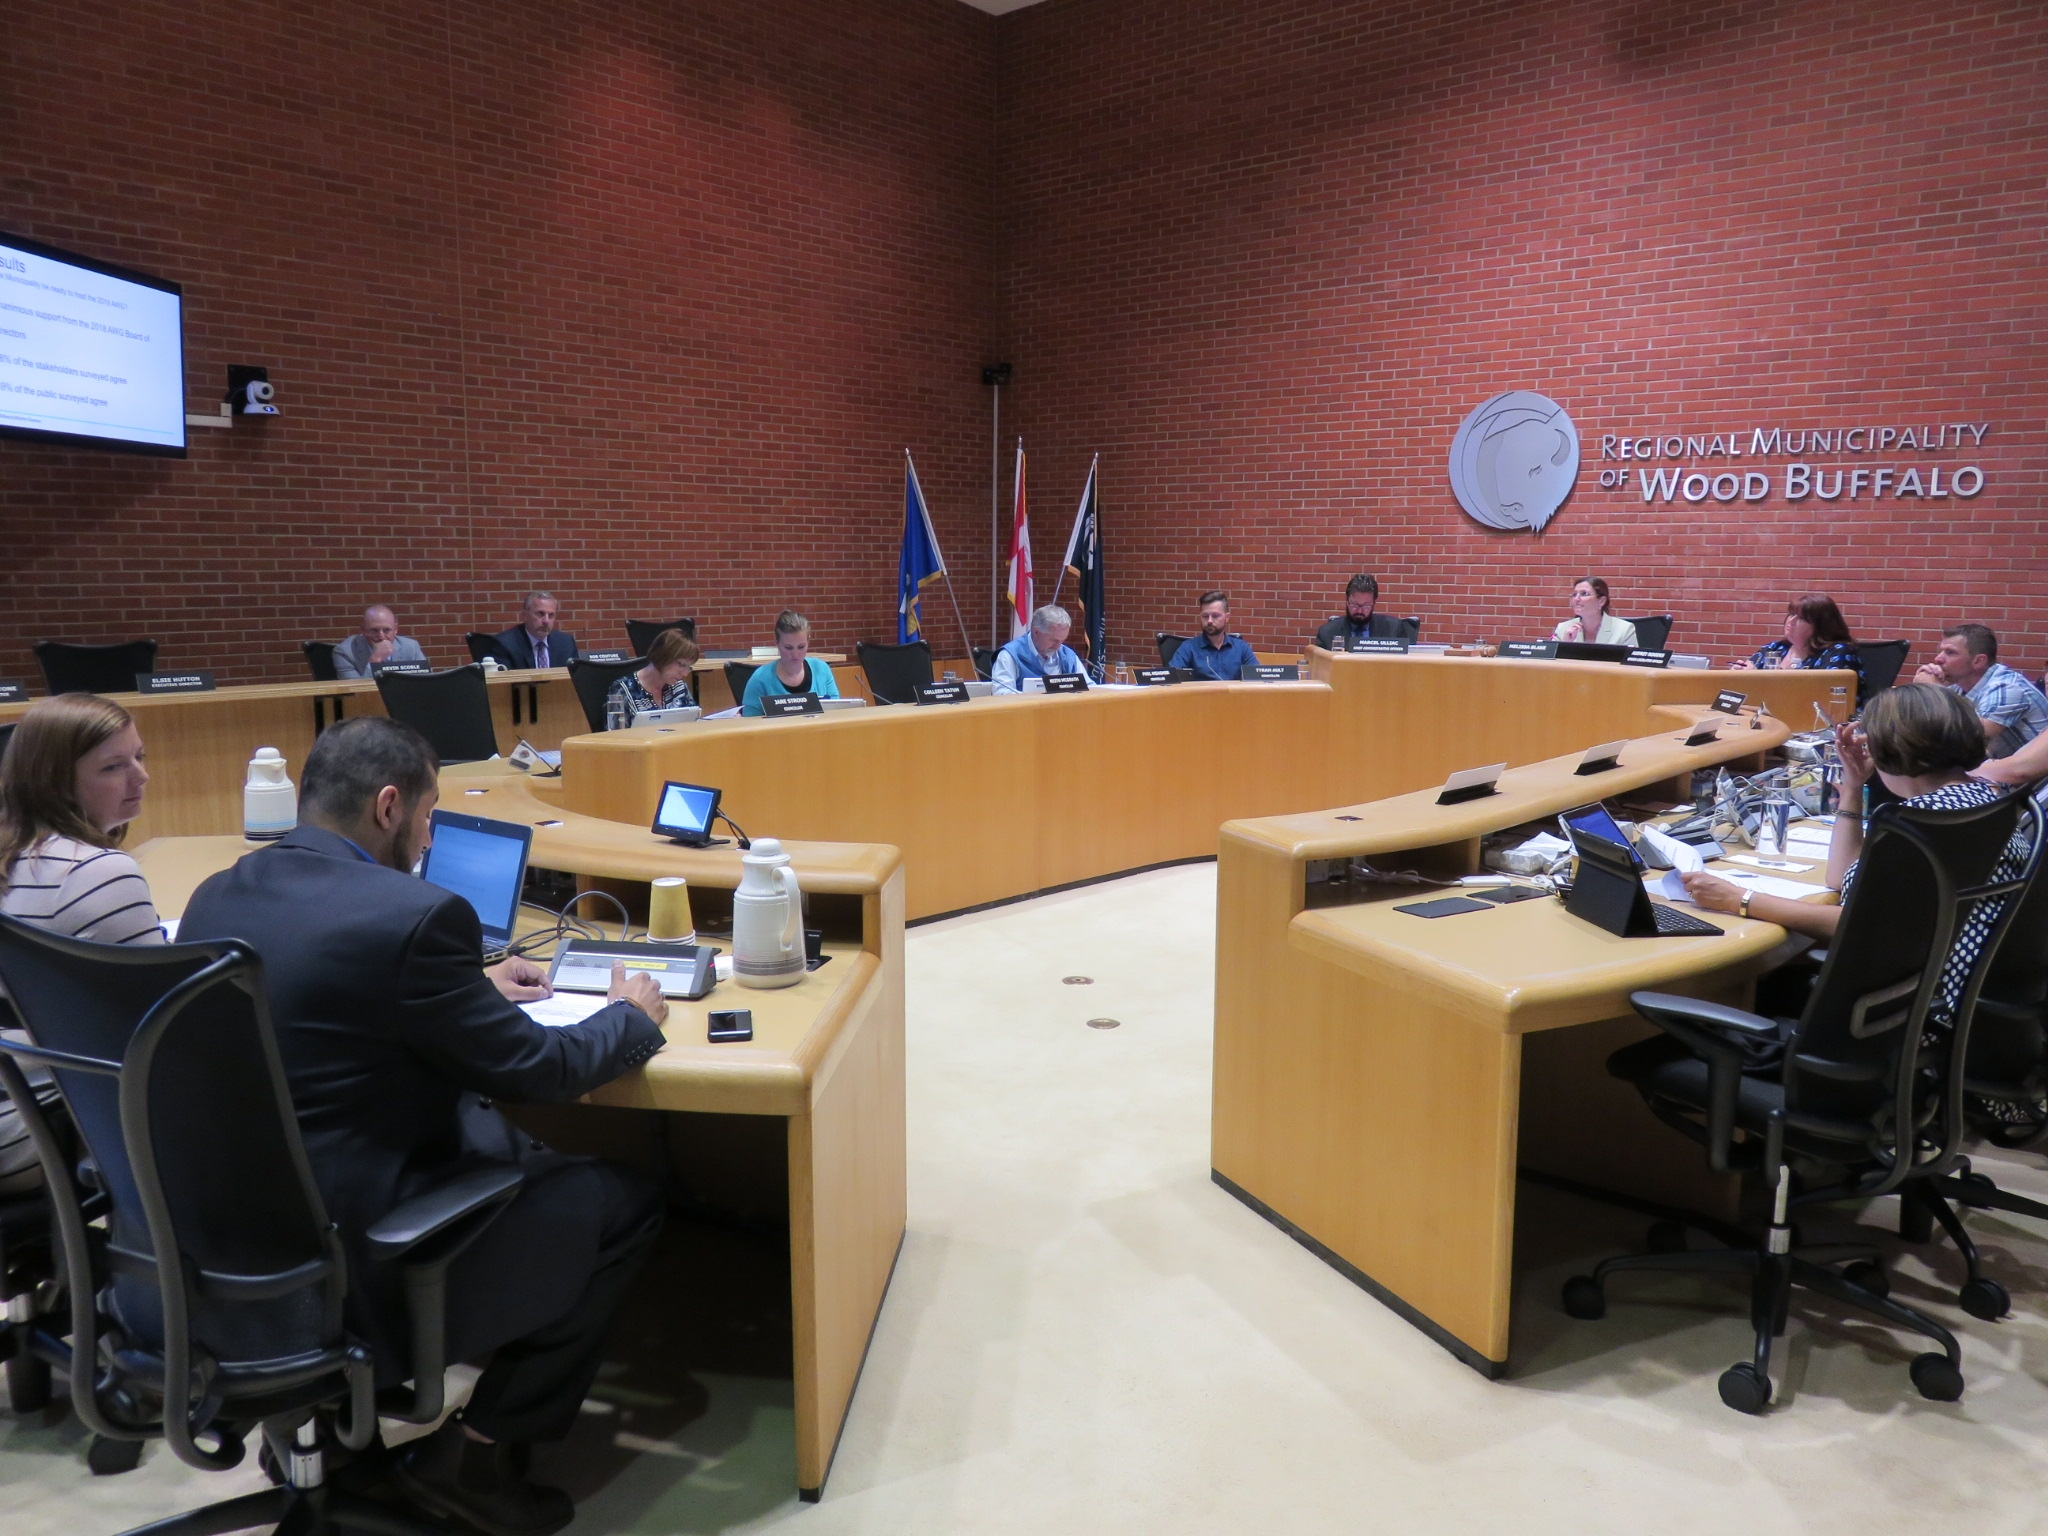 Council hears outline for 2017 budget